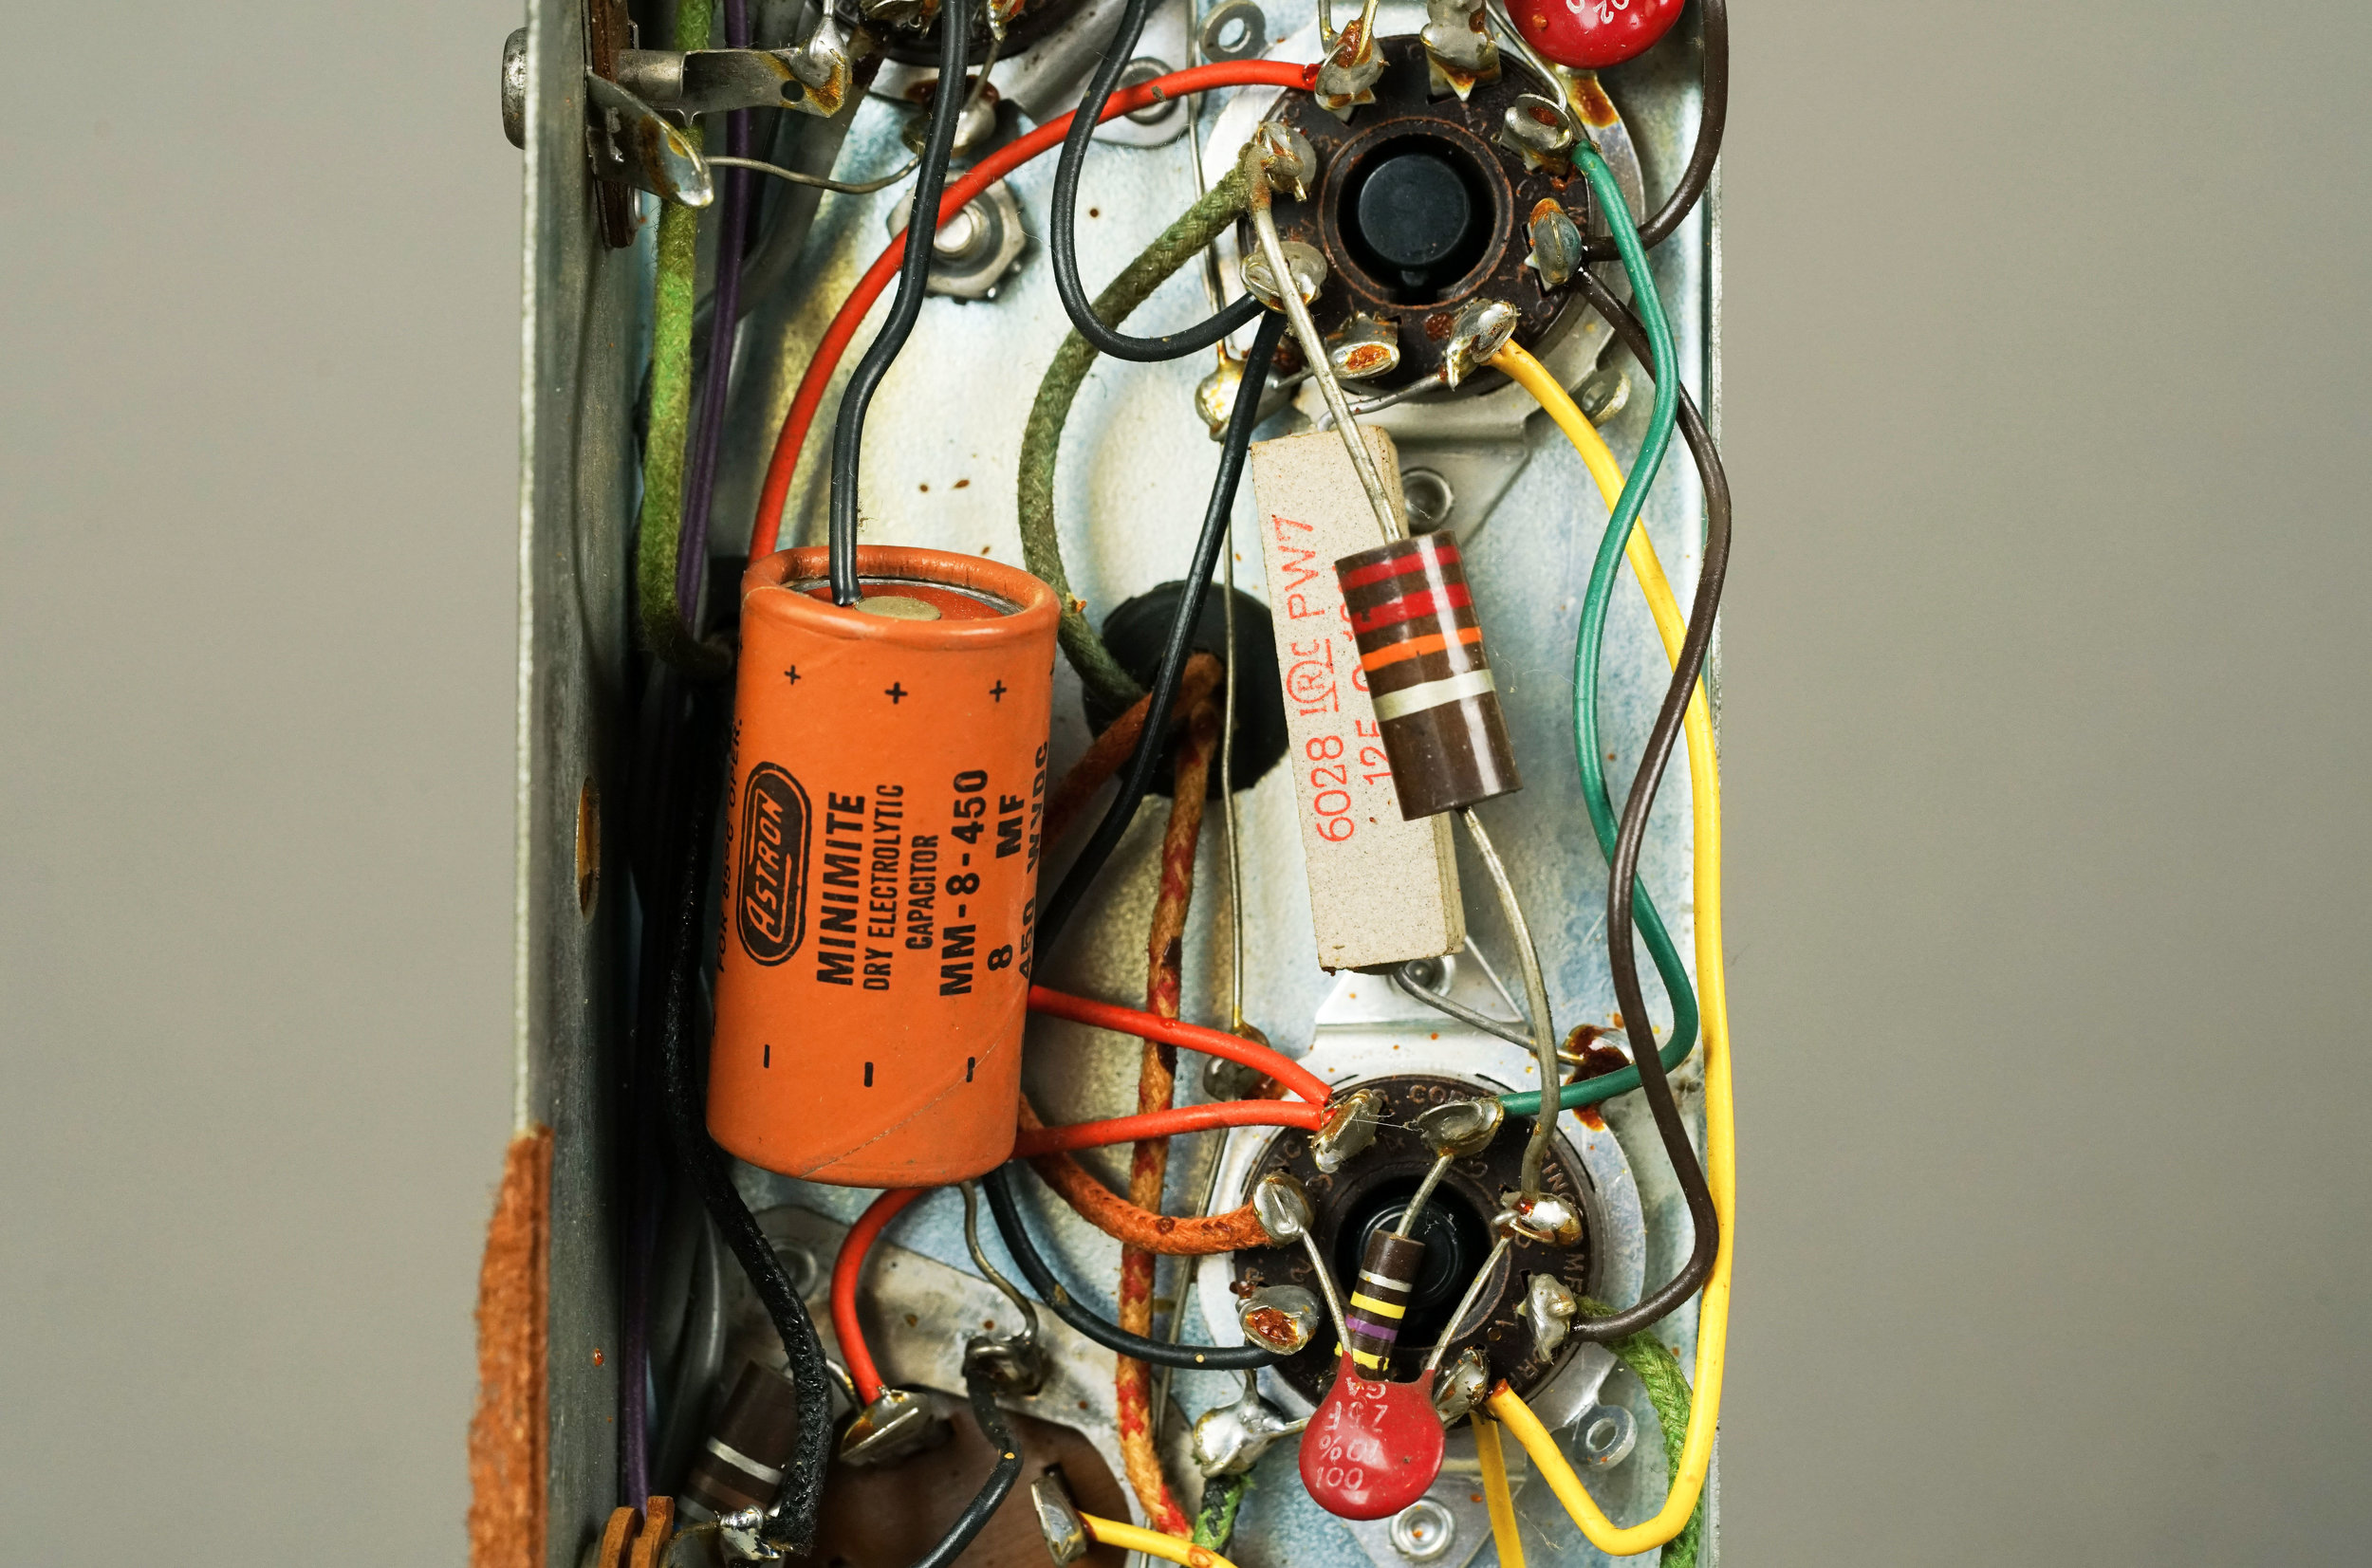 Note the Astron Minimite electrolytic capacitor in this original  Wurlitzer 700  amplifier. The leads are very long, which is convenient for mounting in a point-to-point circuit like this one. On the right, there is a 7 watt wirewound resistor as well as a high-wattage (probably 2 watts) carbon composition resistor.